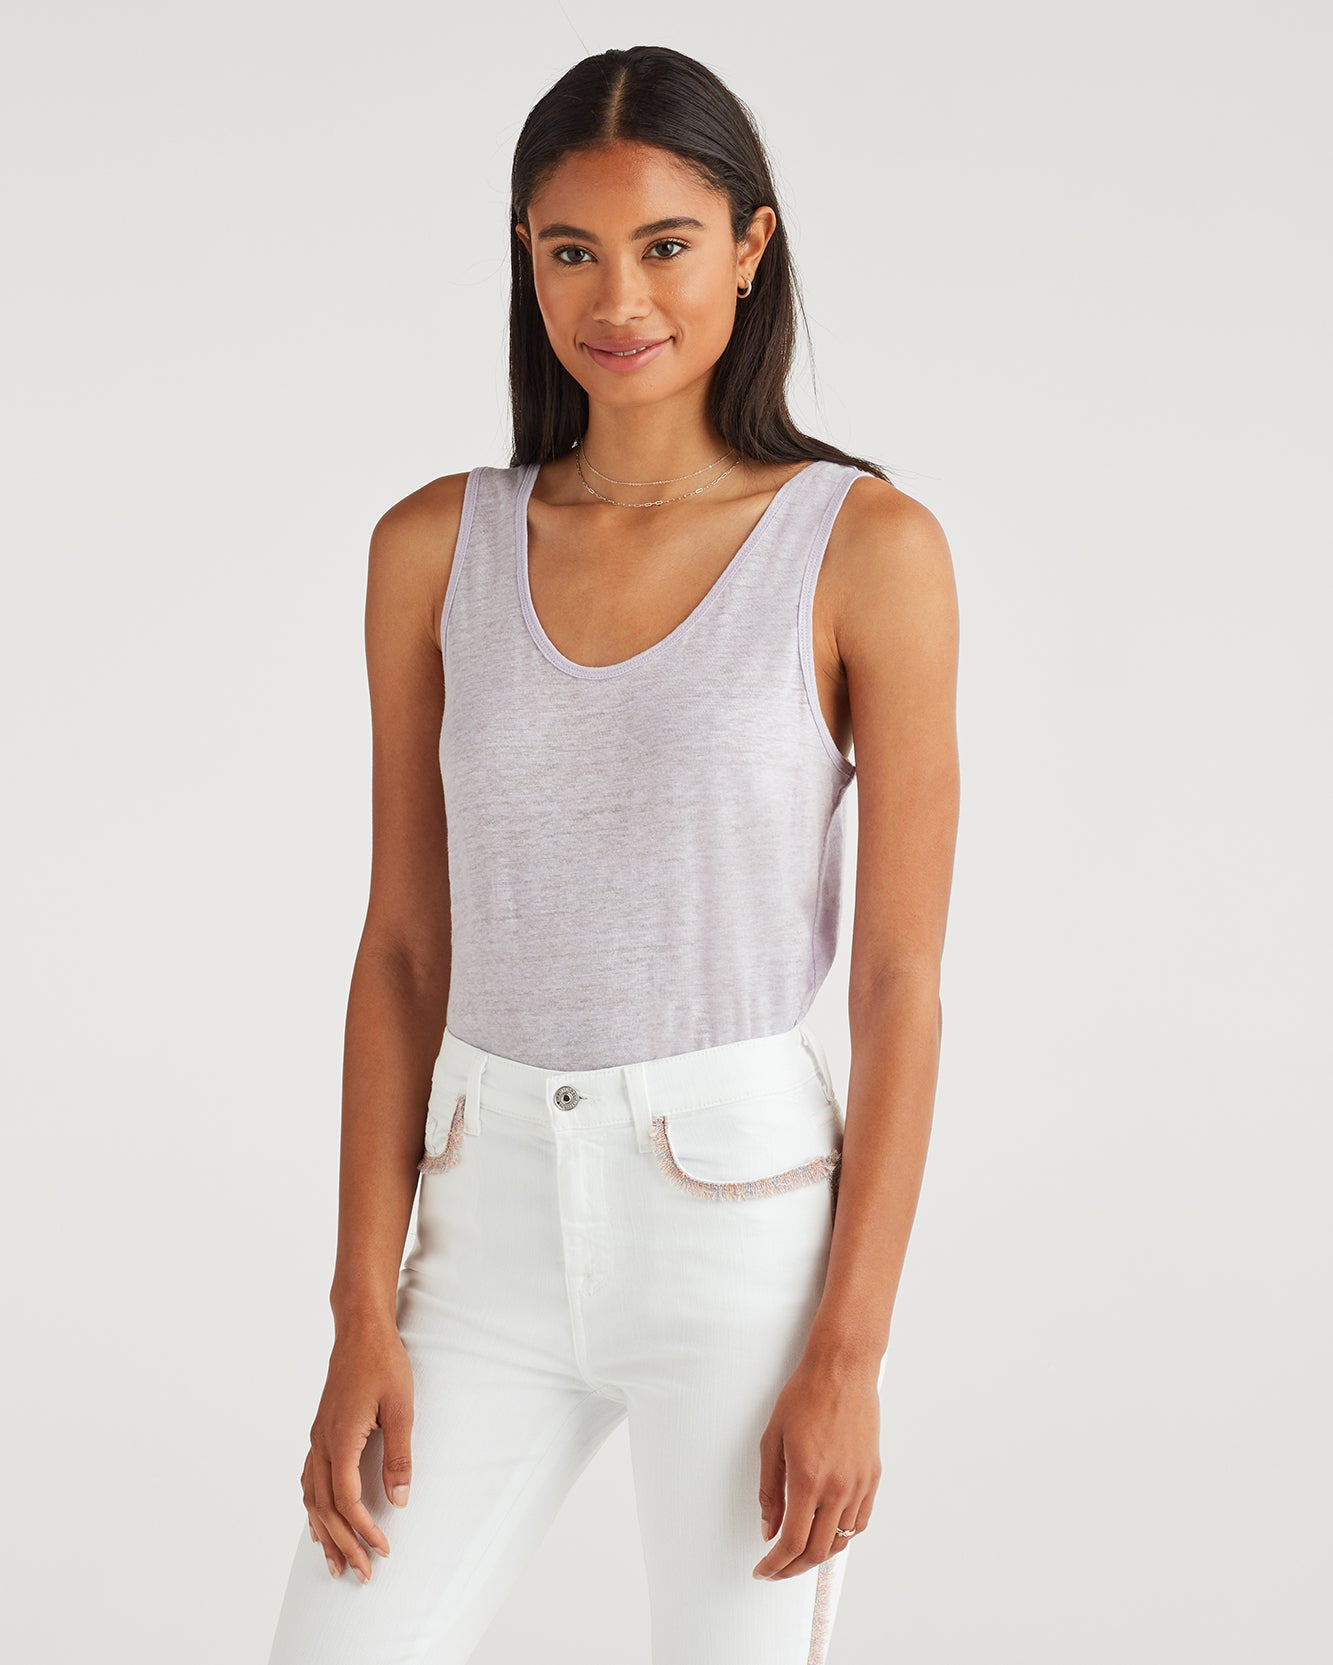 Image of Scoop Neck Tank in Lilac Mist